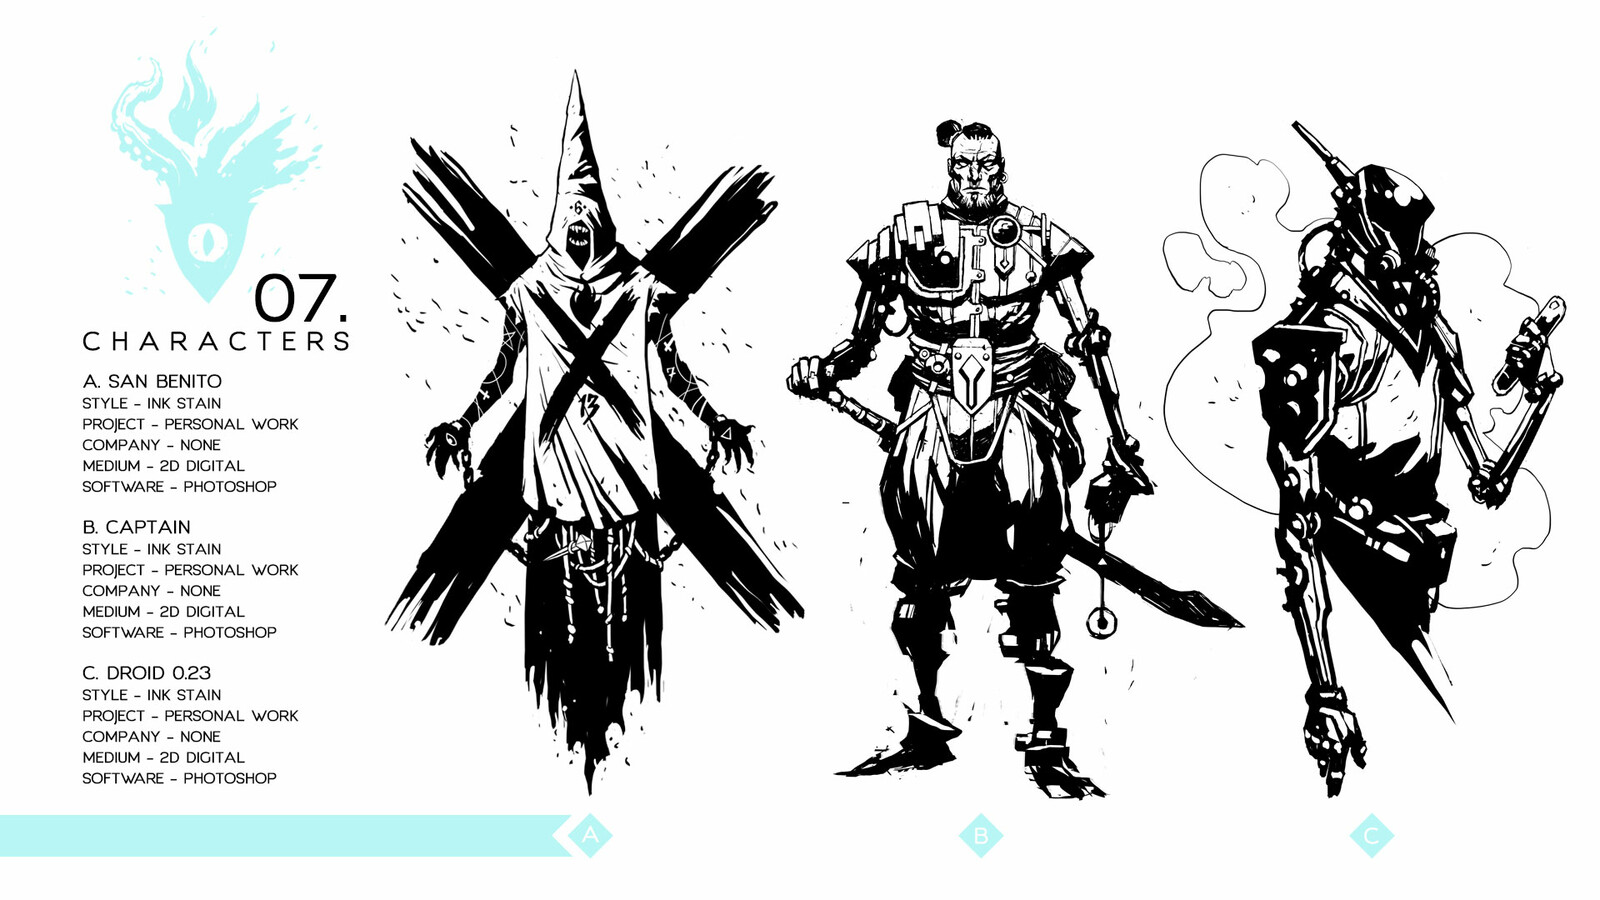 Character sketches - Personal work